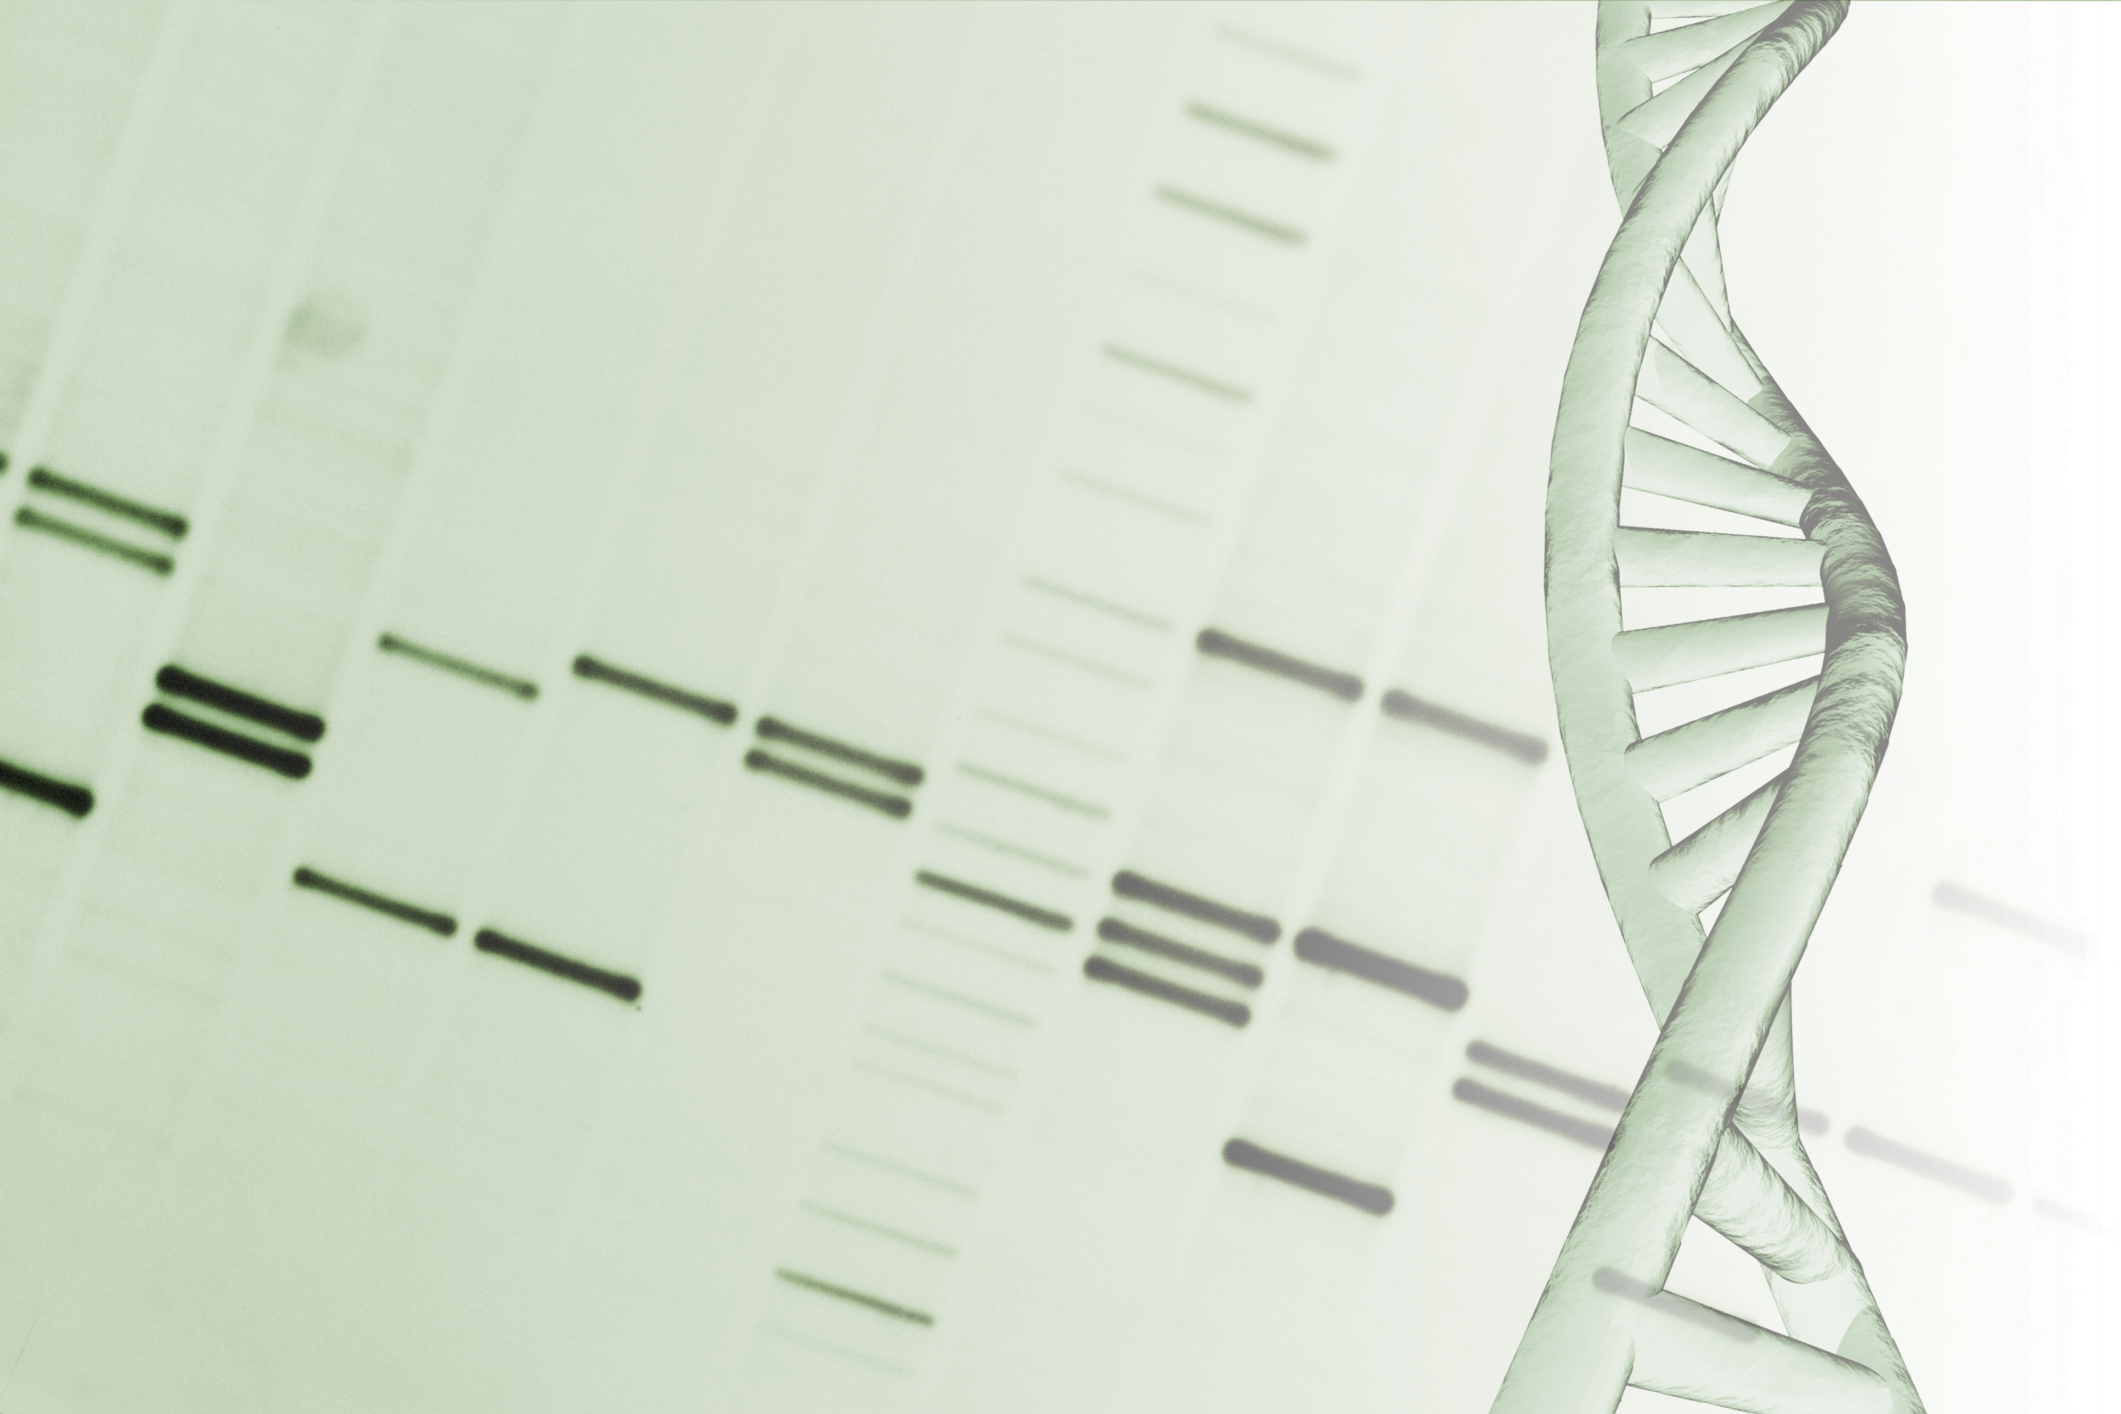 How to Calculate RNA Concentration